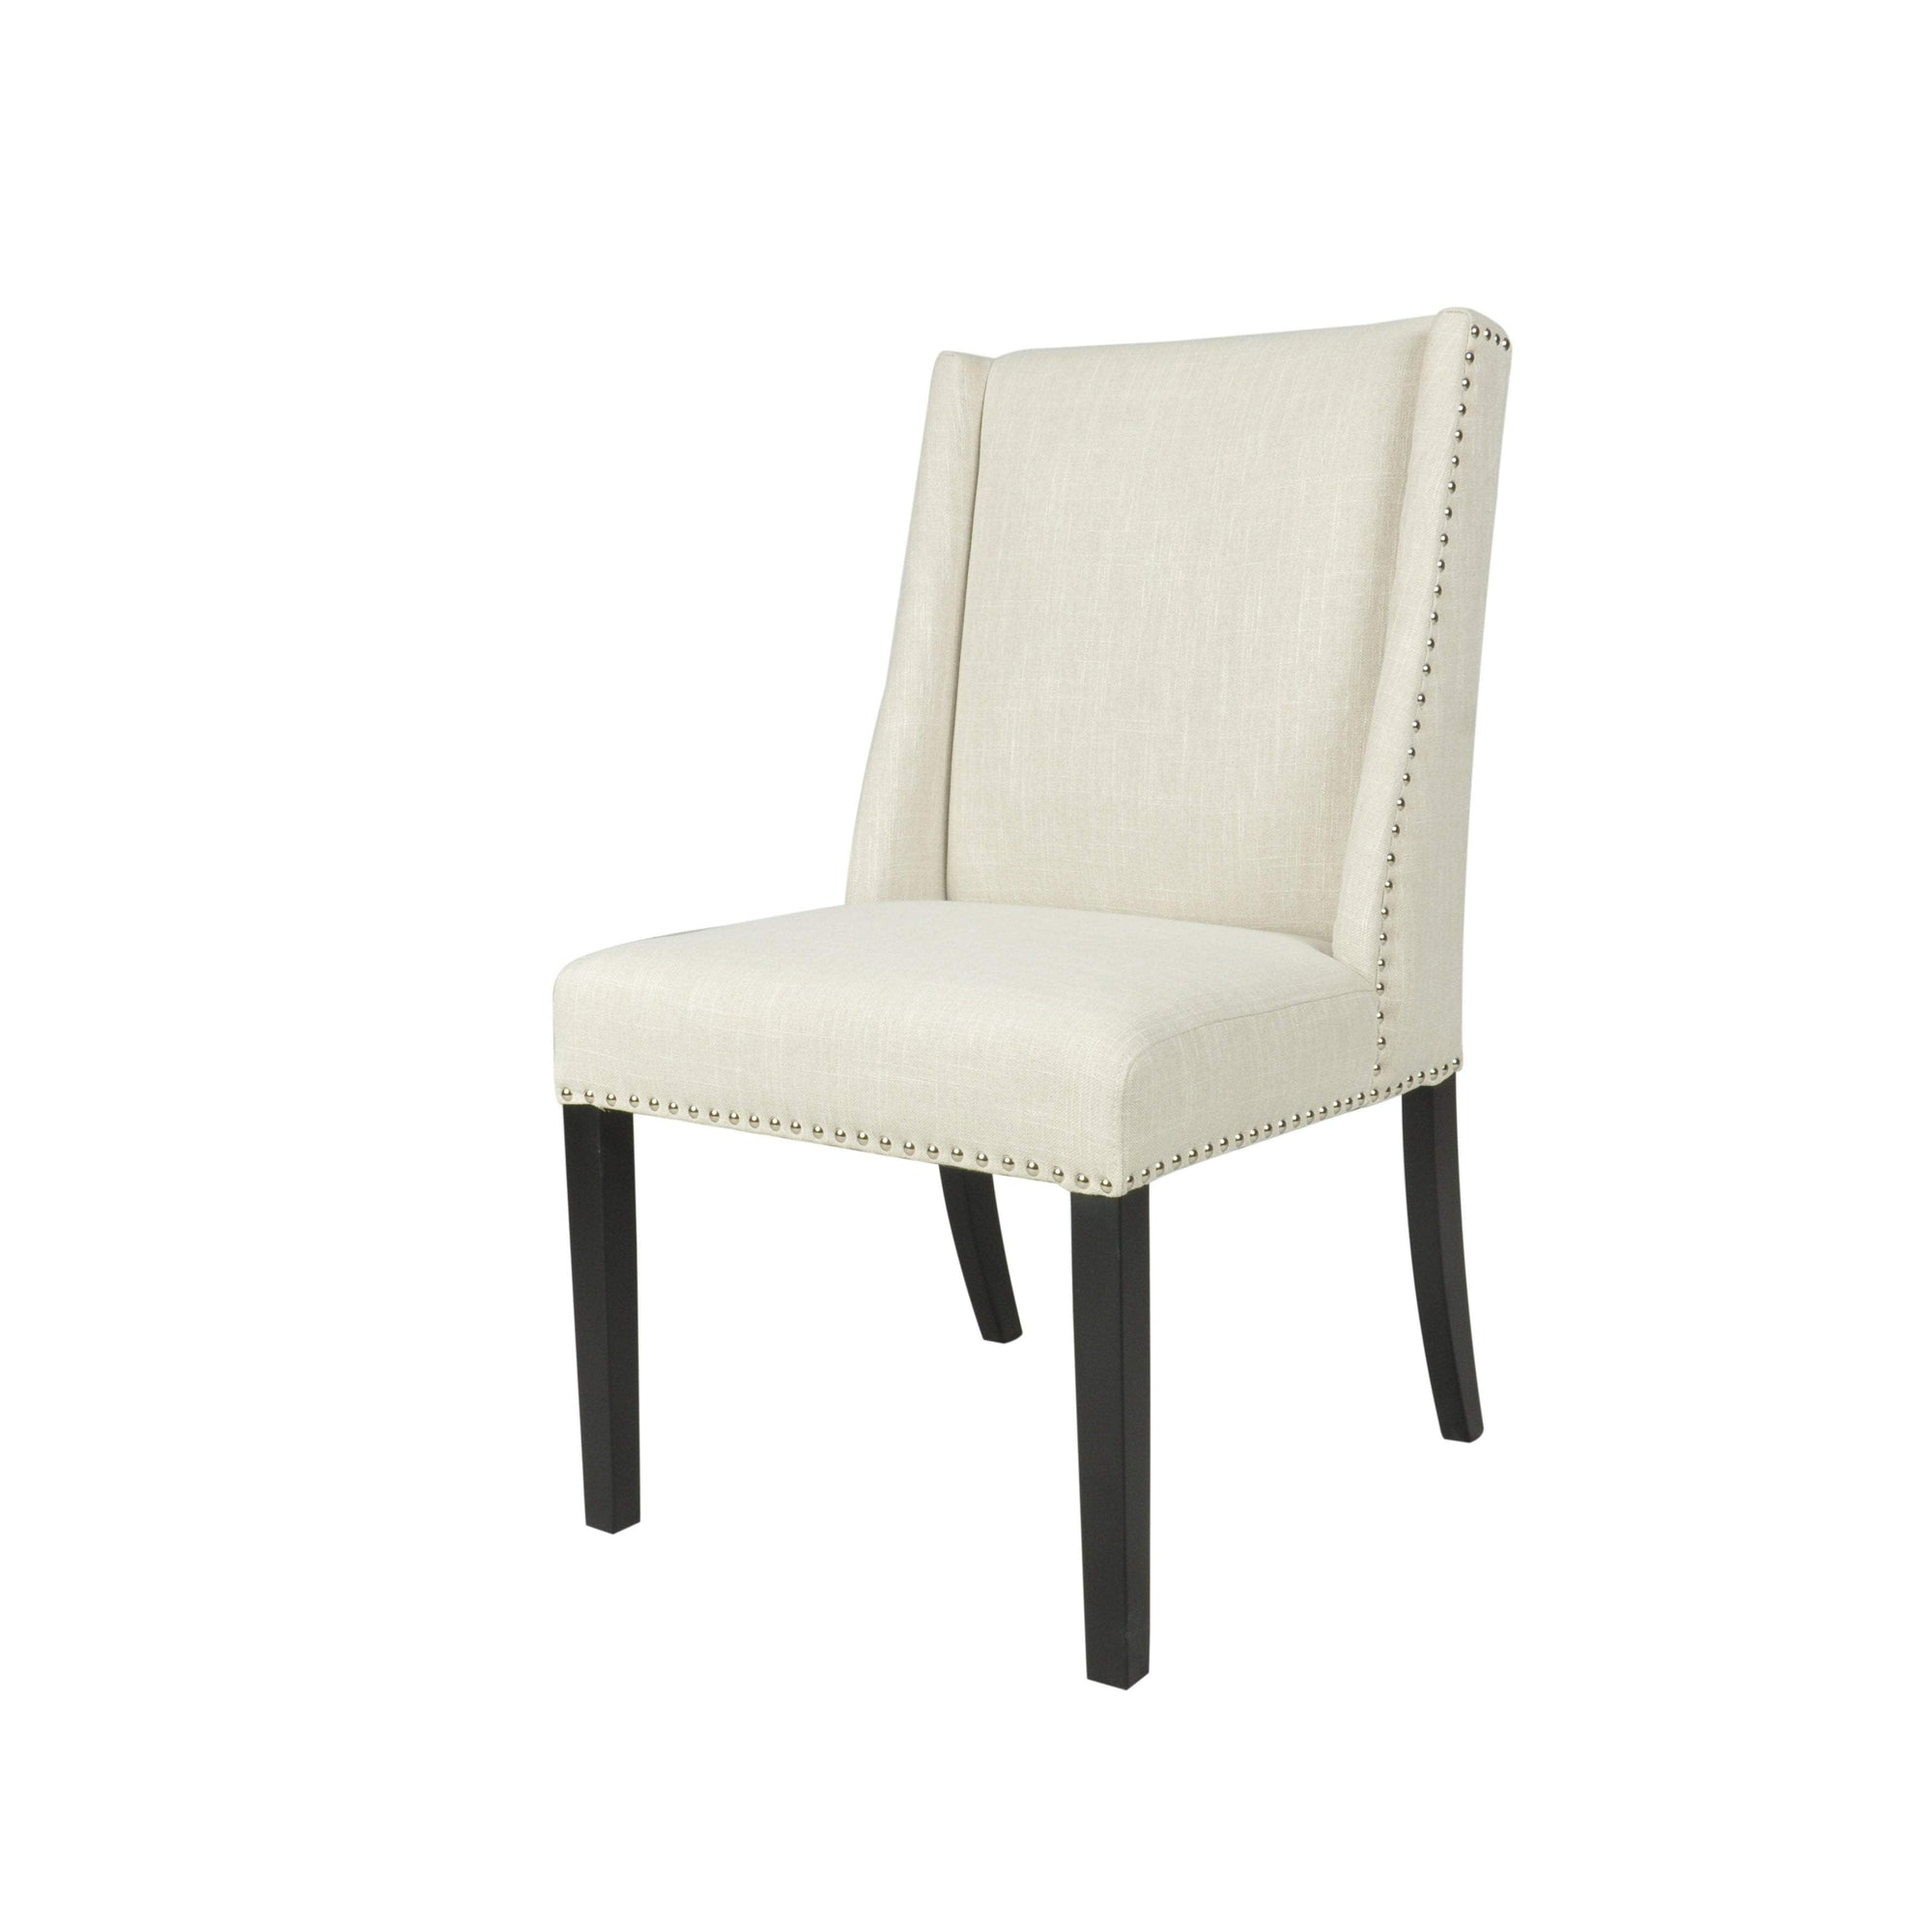 Braydon Linen Dining Chair - Natural